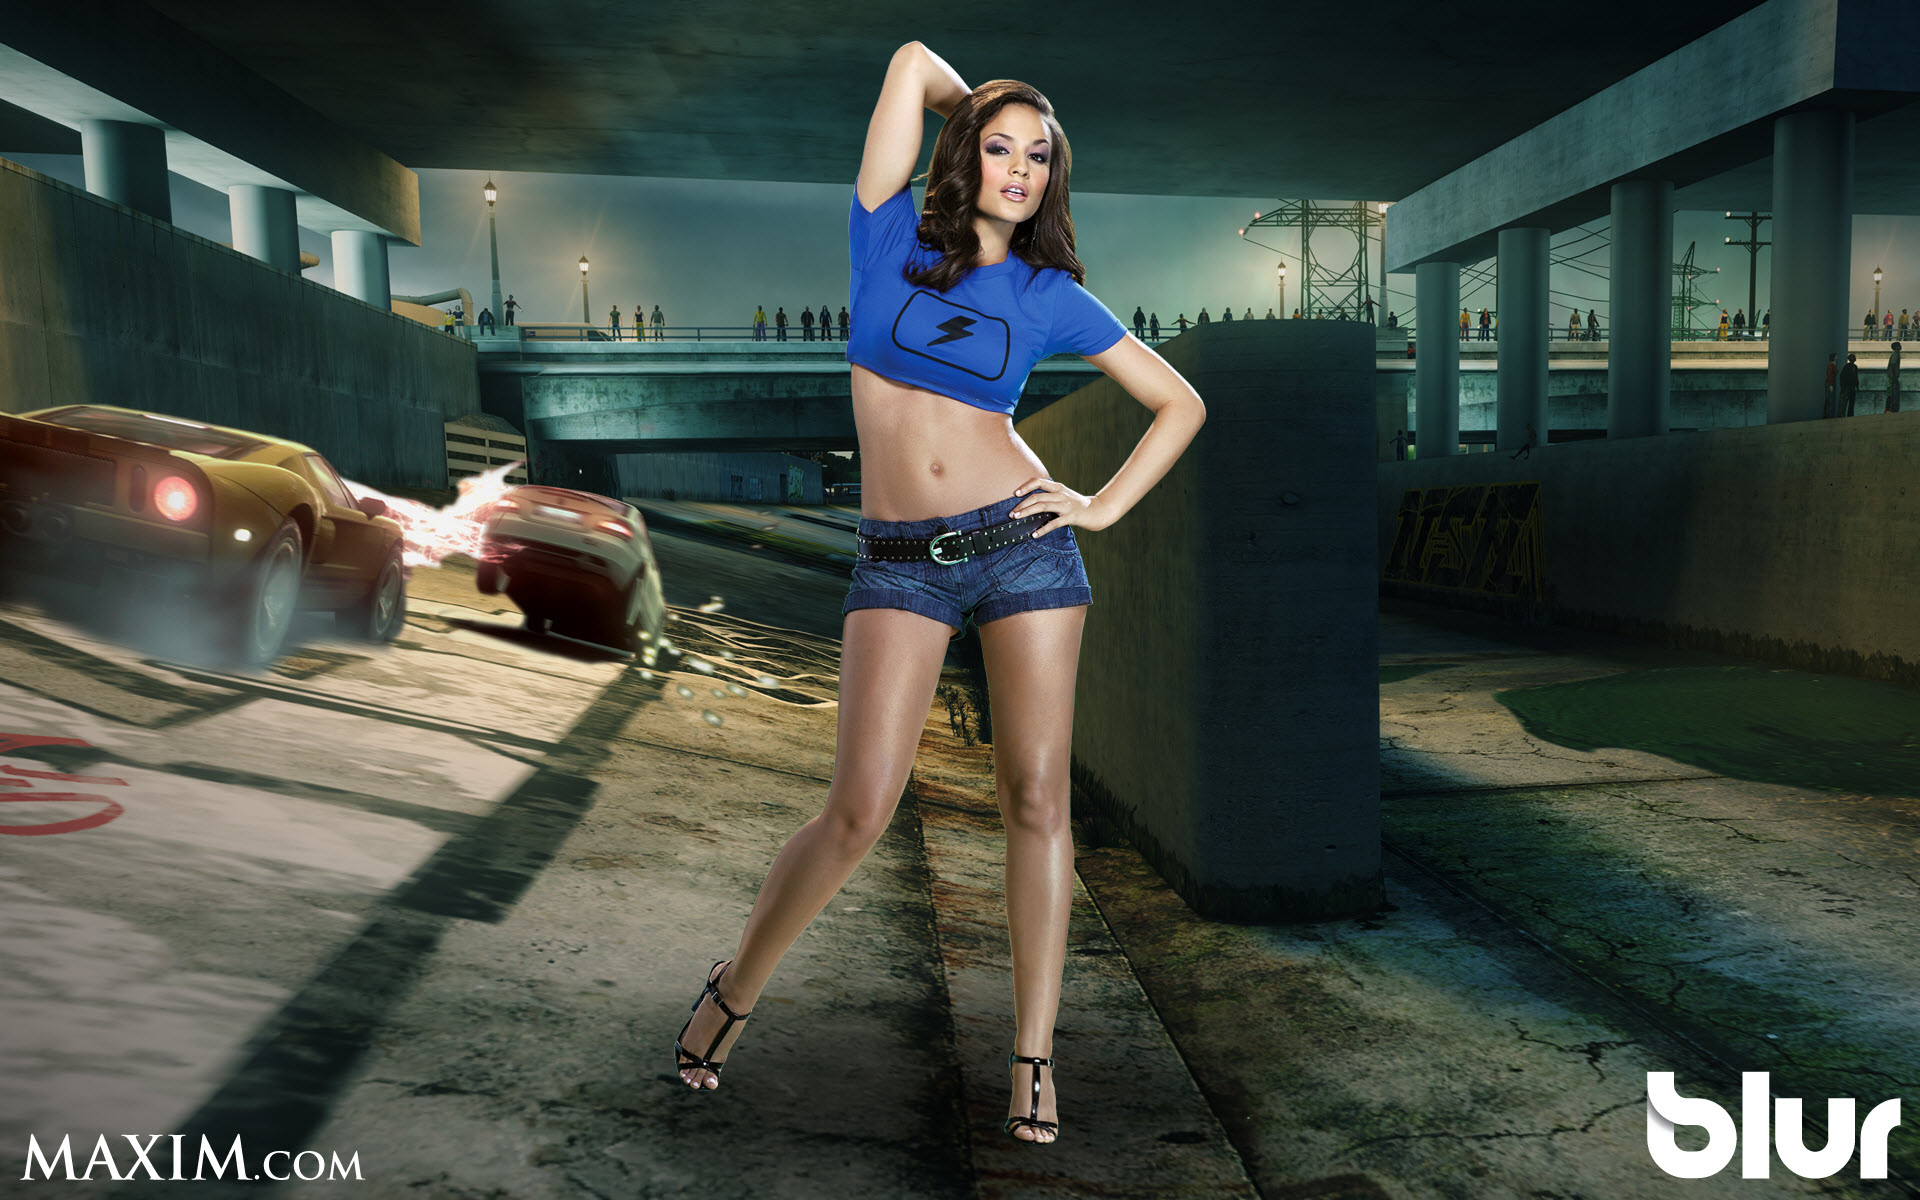 MAXIM Girl for Blur Game 367.19 Kb